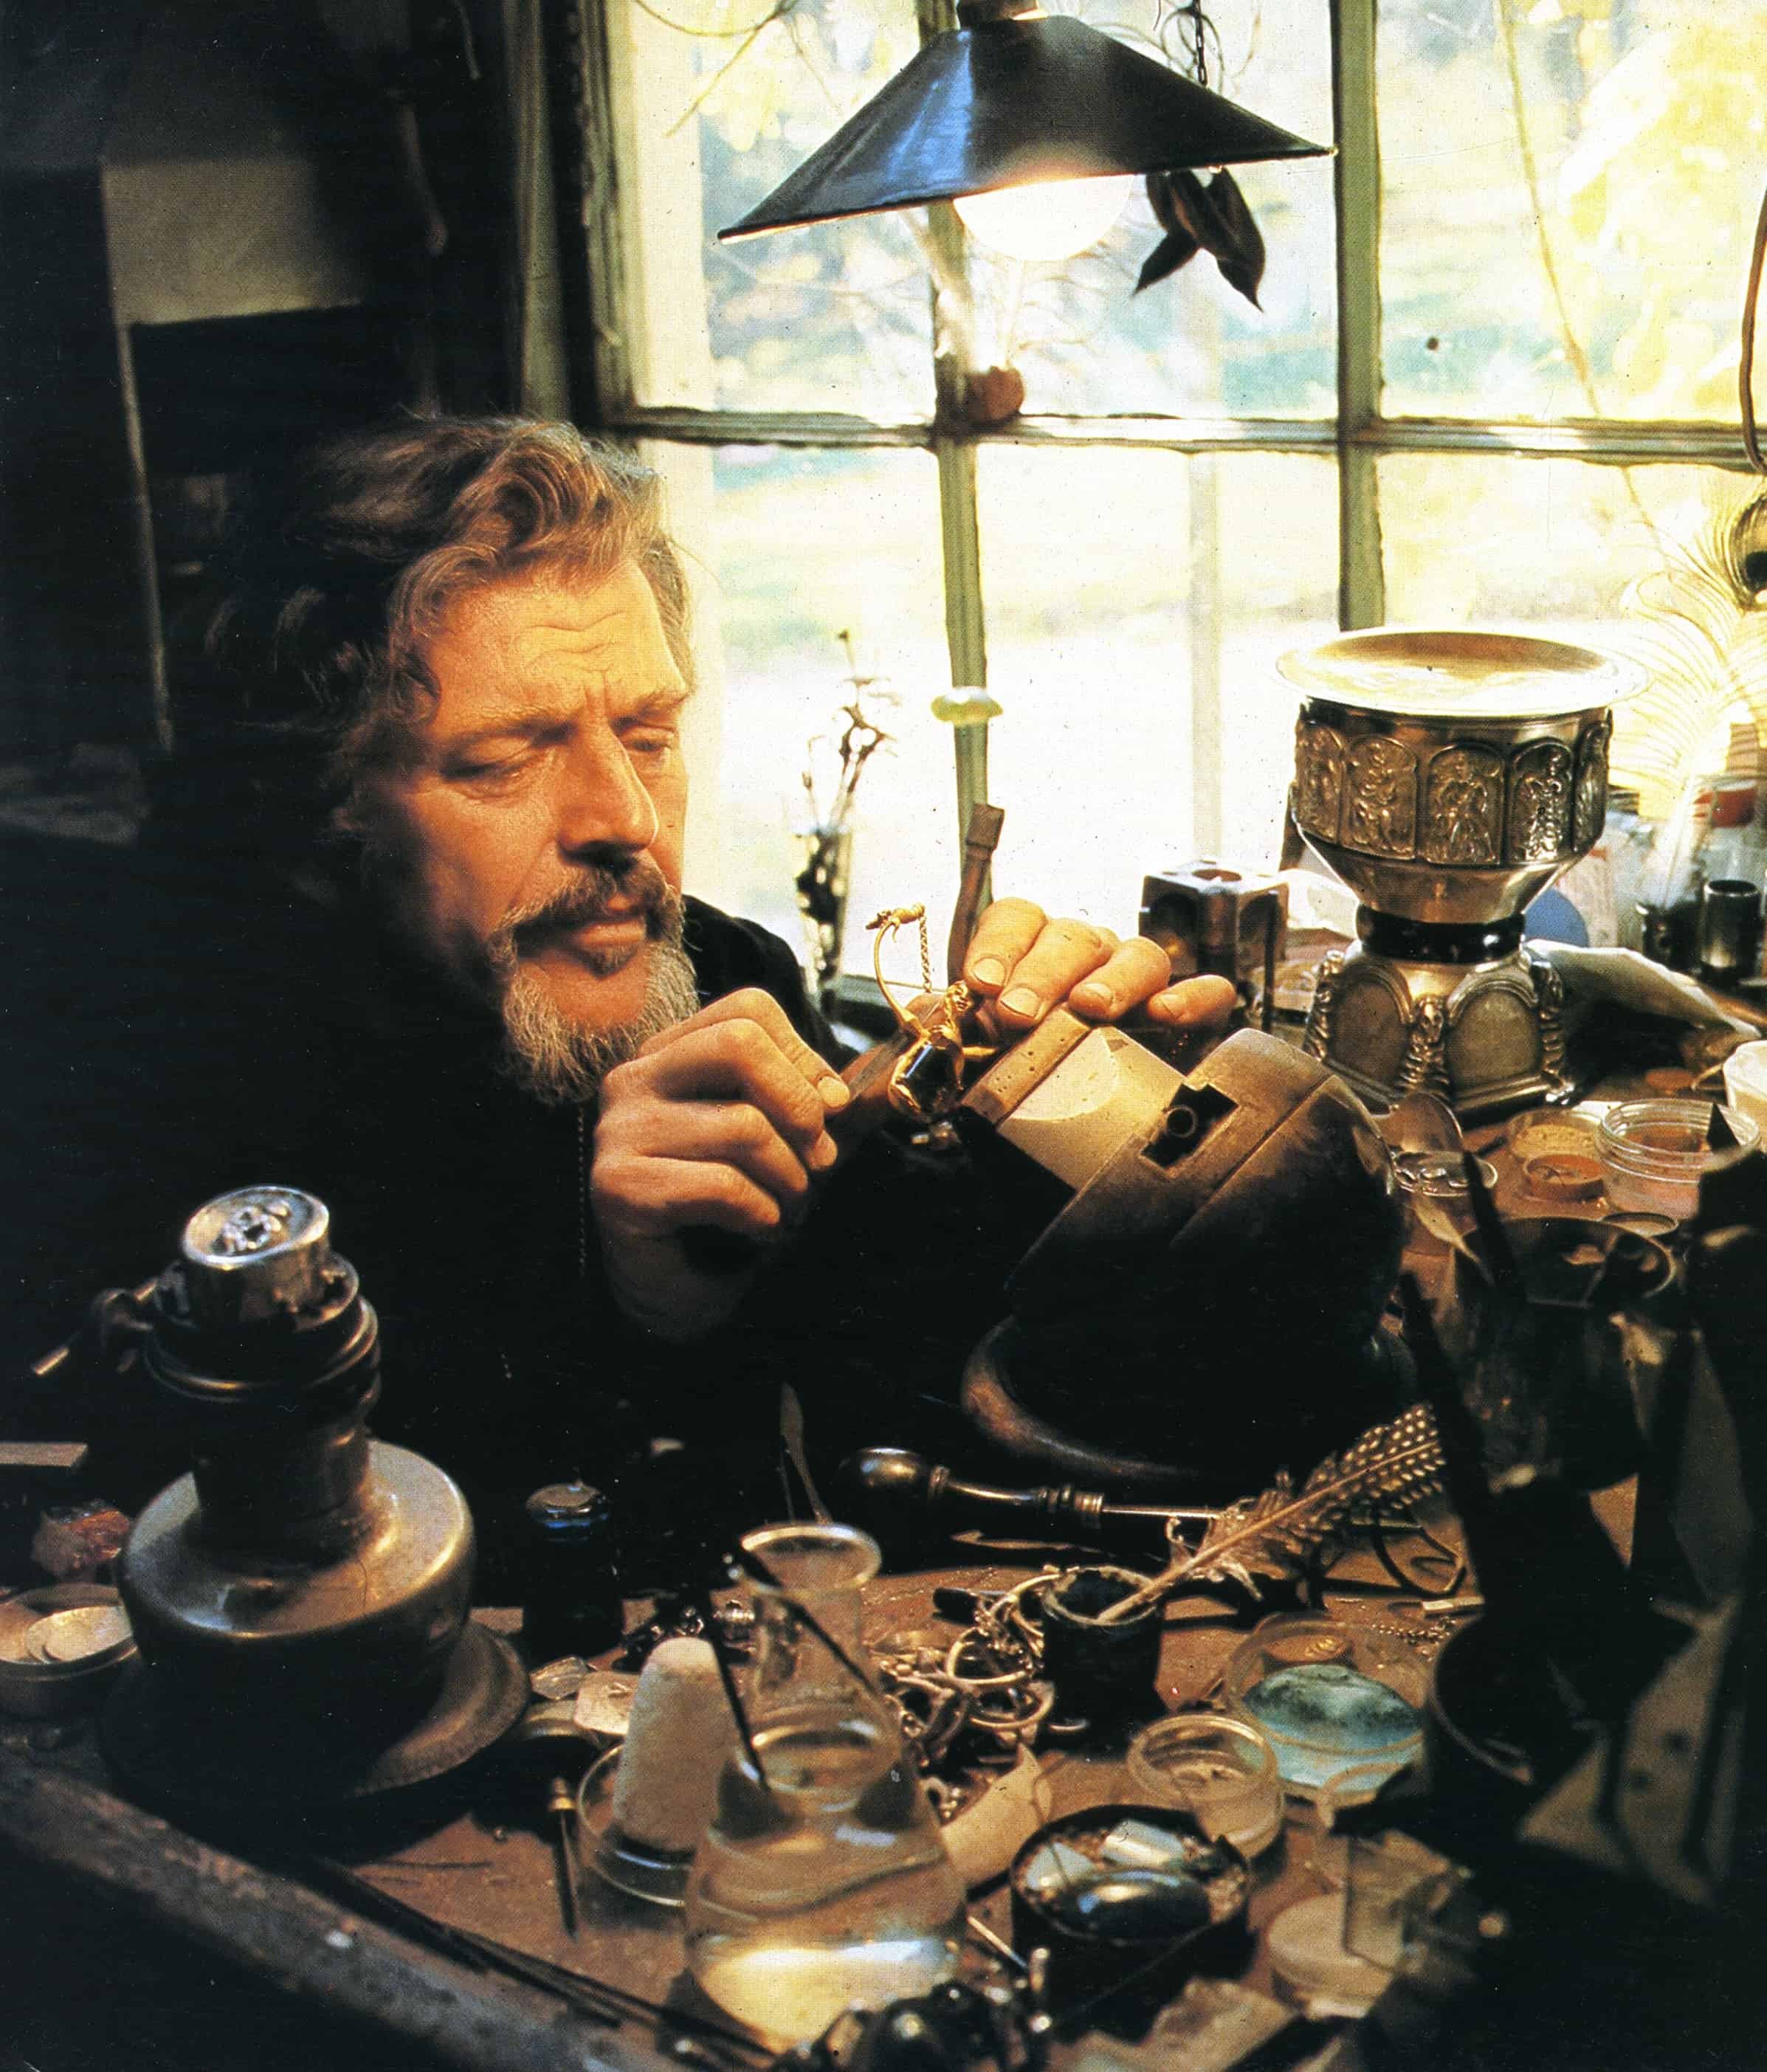 Matcham Skipper at work in his jewellery studio at Montsalvat